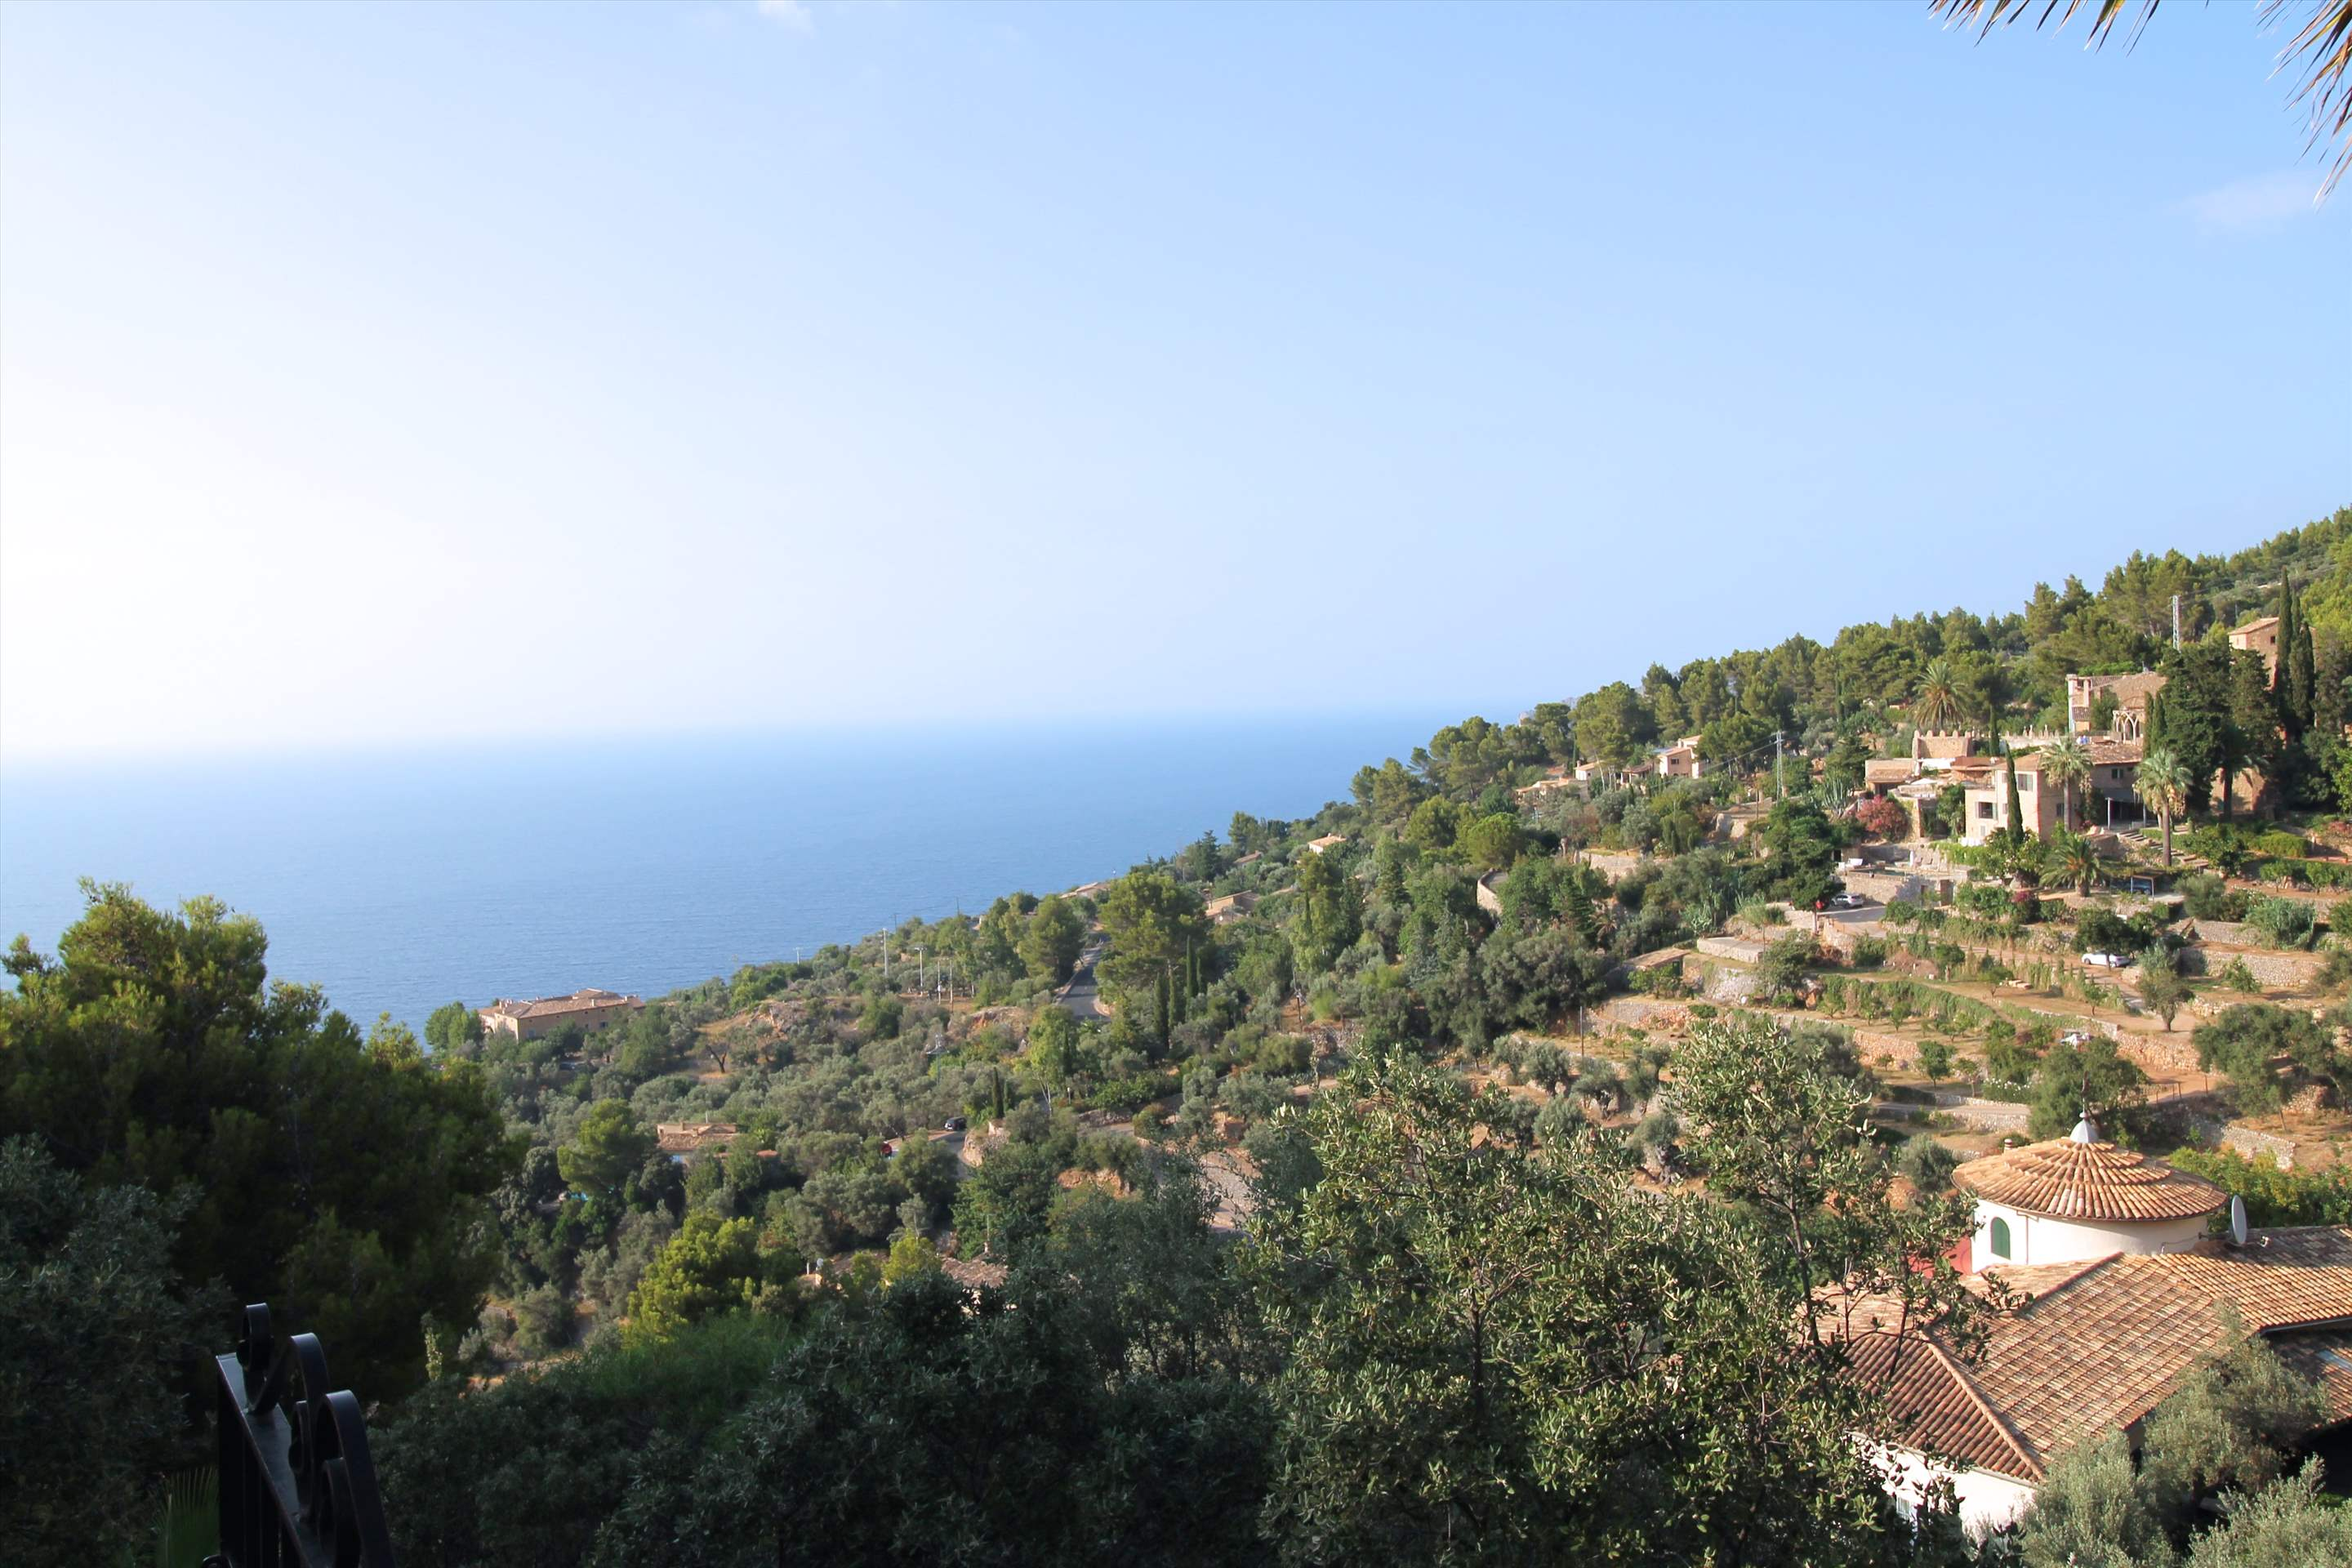 Can Winando, 4 Bedroom Rental, 4 bedroom villa in Soller & Deia, Majorca Photo #30